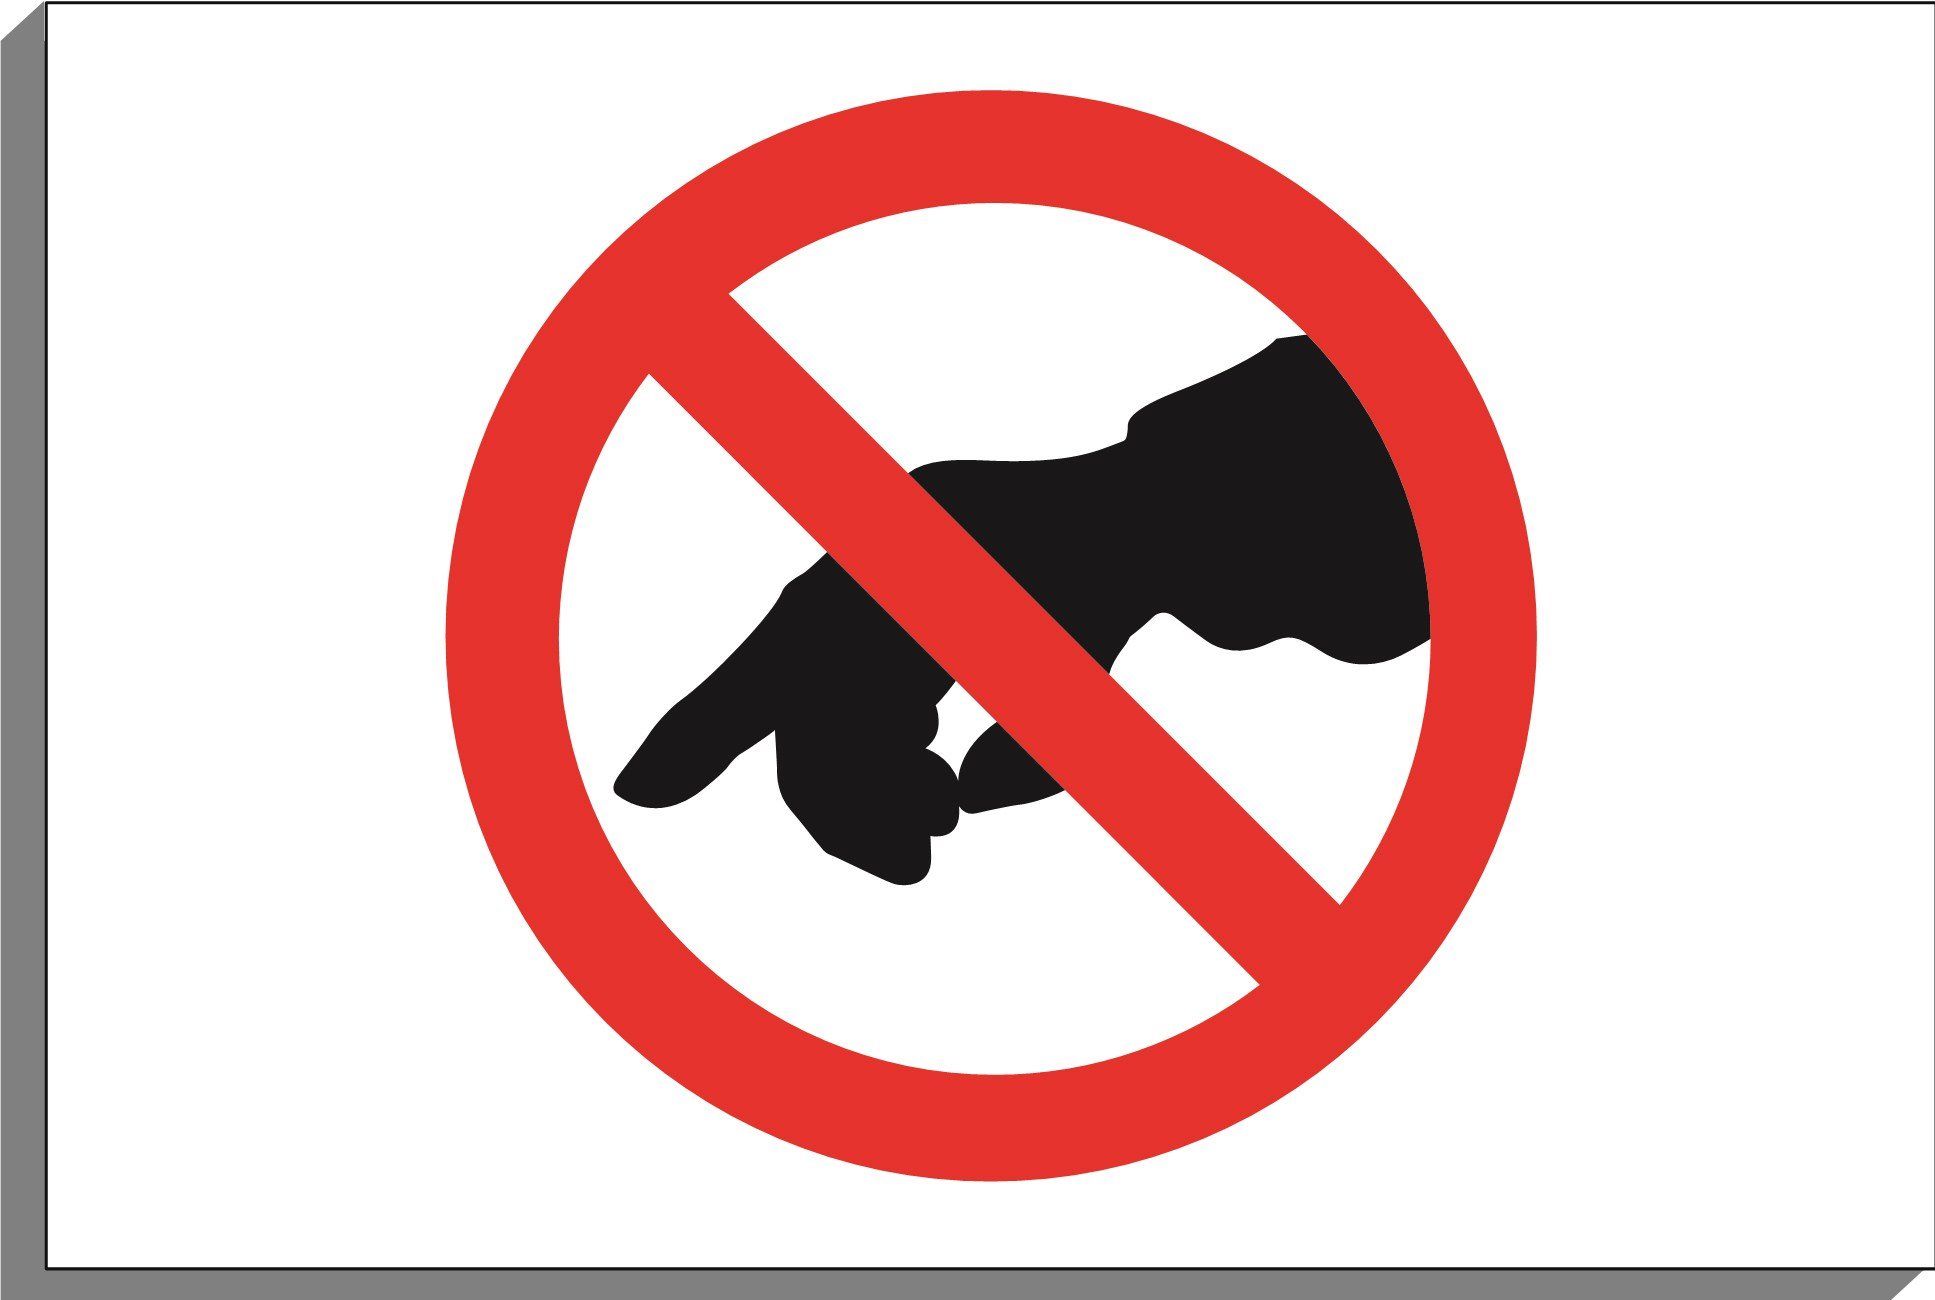 No touching sign clipart svg freeuse library No touching clipart 7 » Clipart Portal svg freeuse library